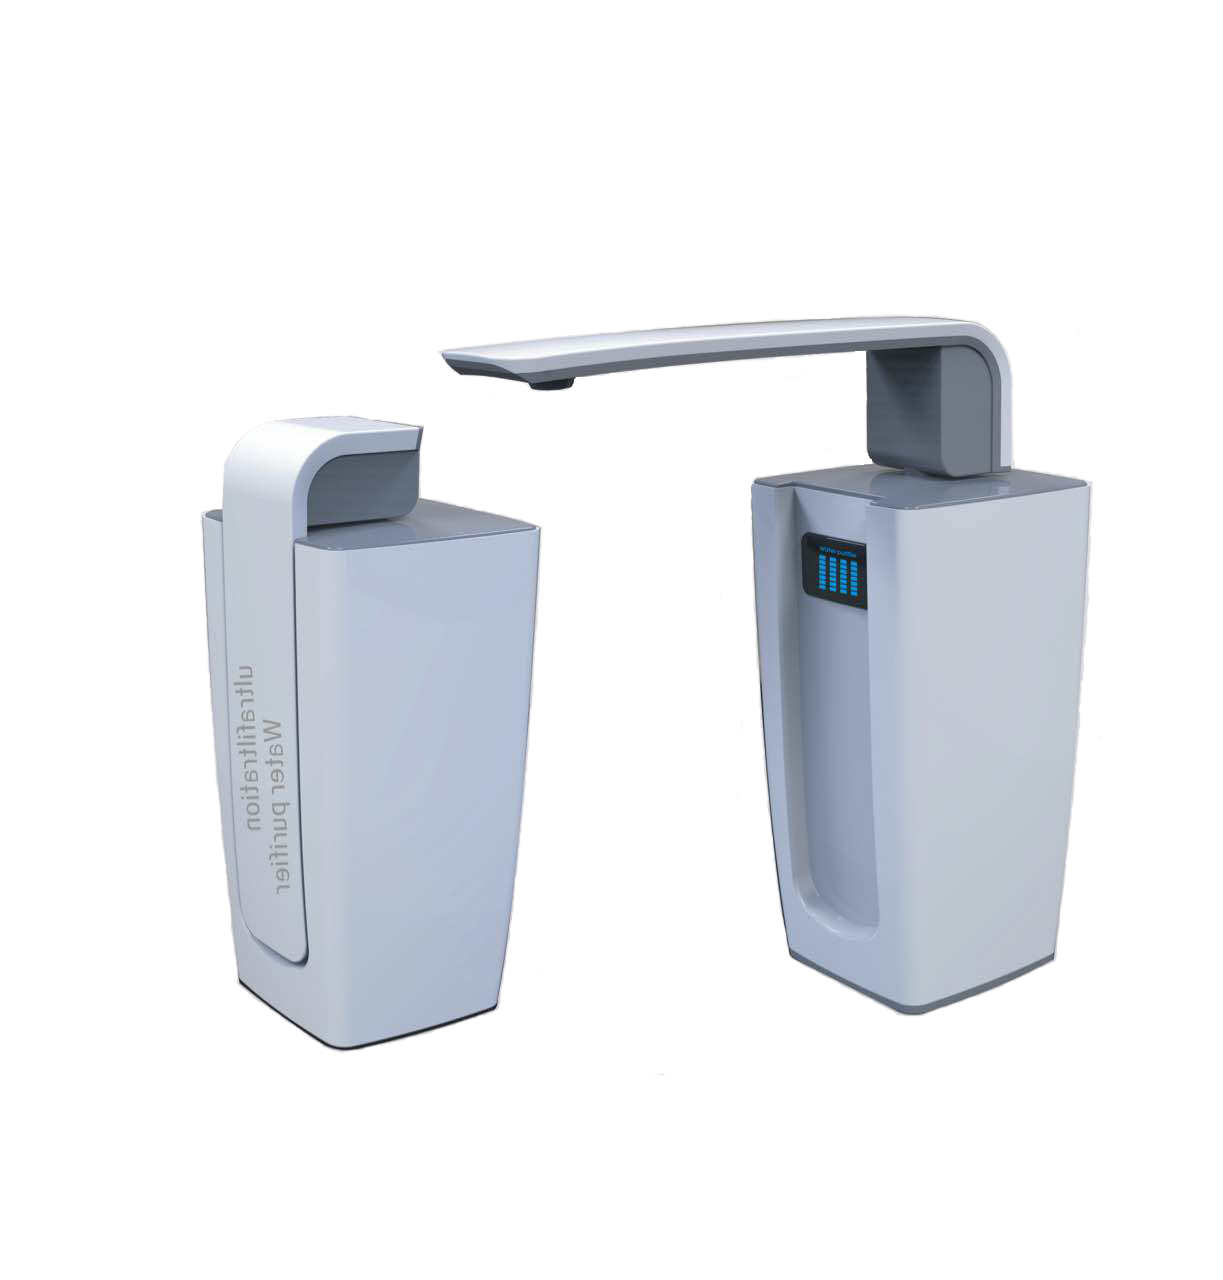 2017 new item free installation table top small faucet water filter Featured Image